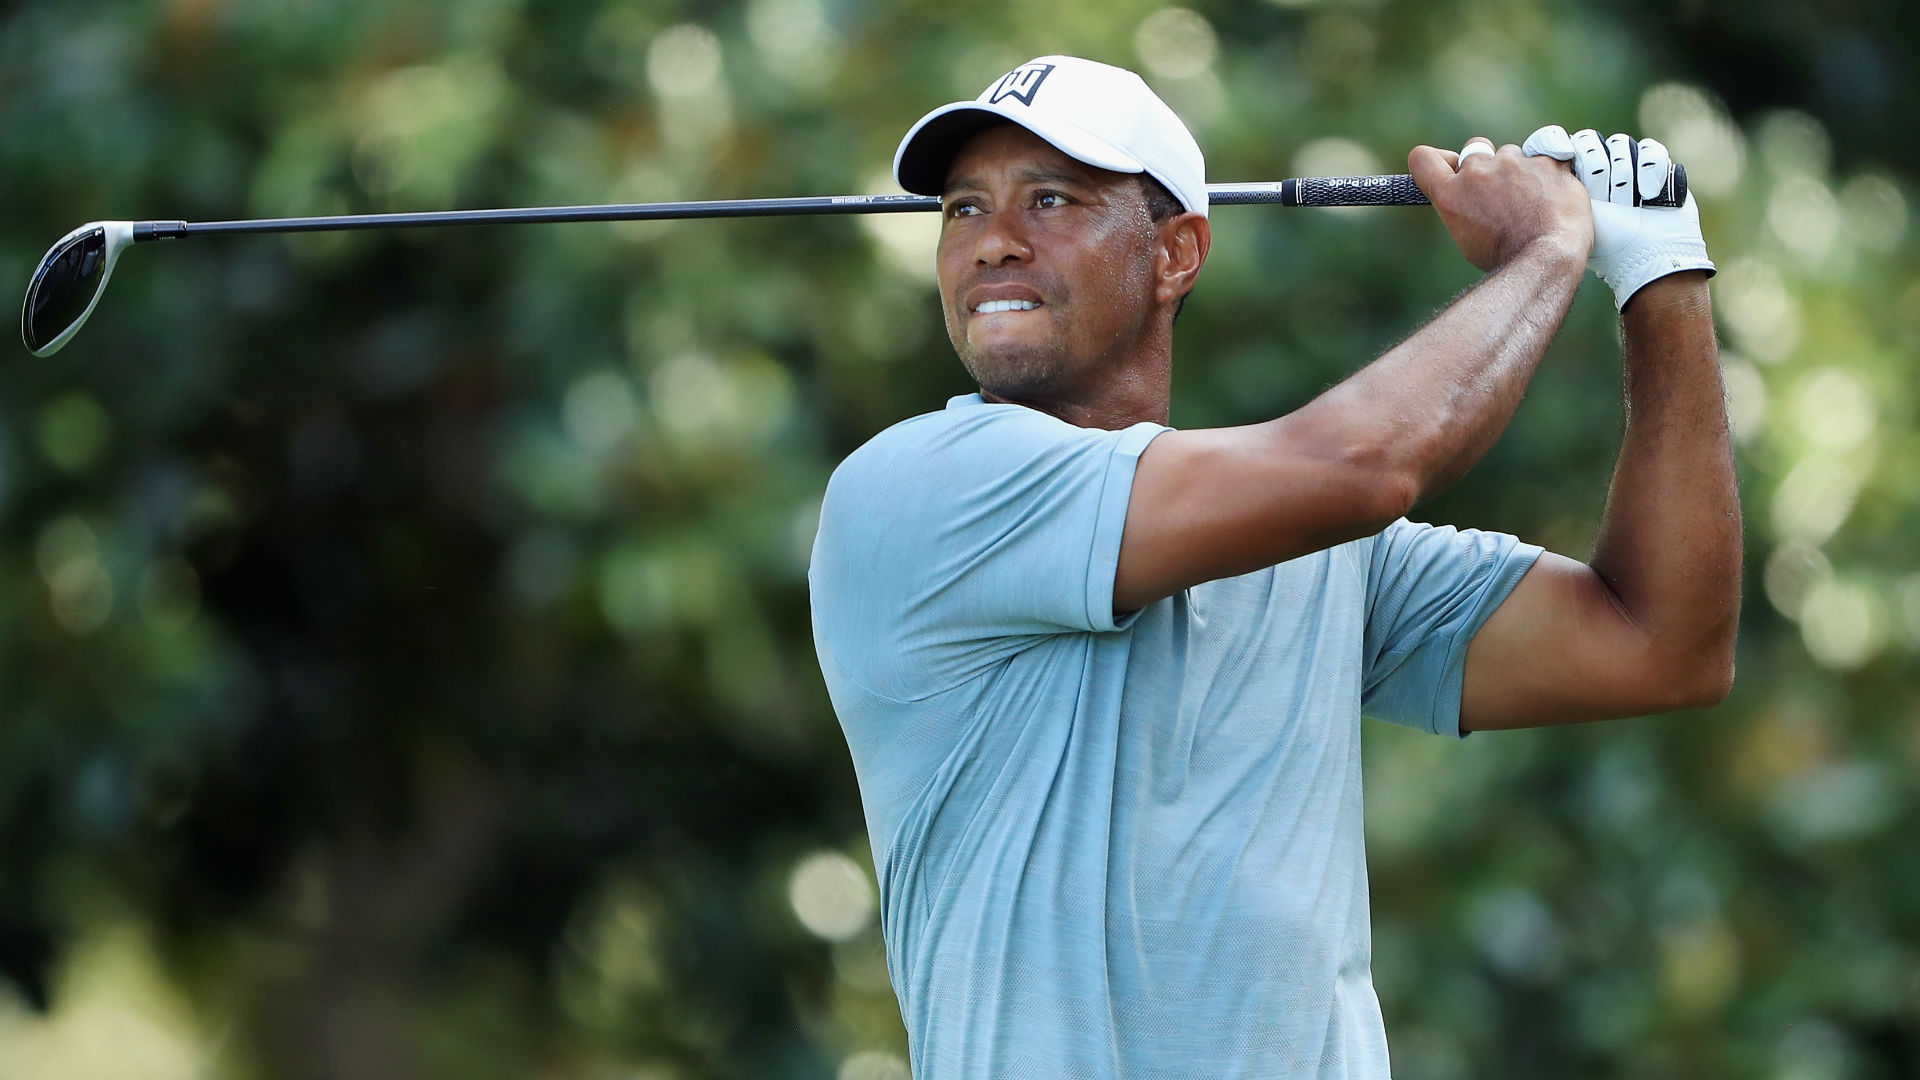 Tiger Woods' score: Round 3 results, highlights from Tour Championship